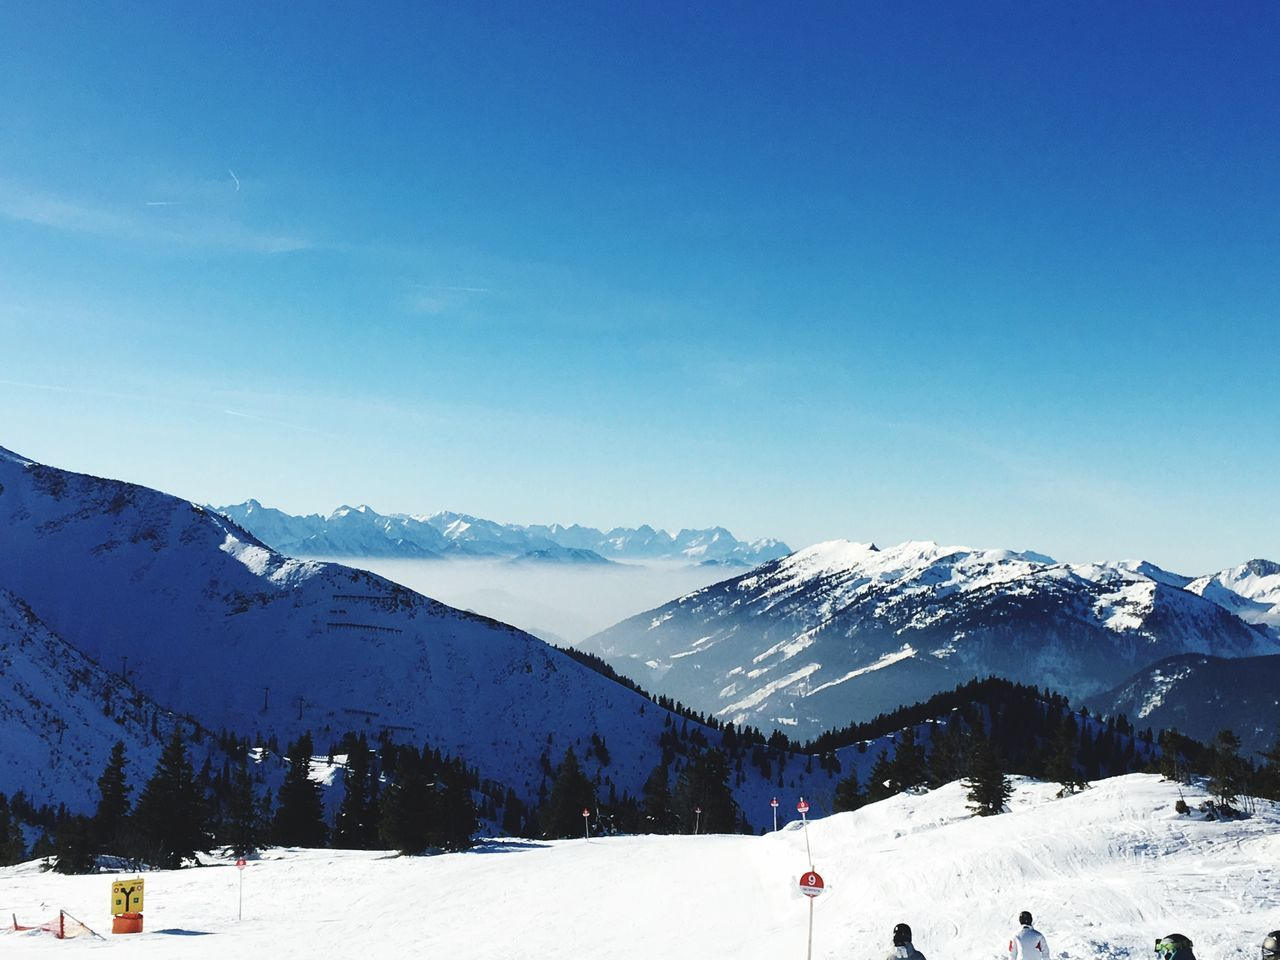 Sky Ski Holiday Snow Snowboarding Cold Temperature Blue Winter Mountain Landscape Alps Alpen Wintersport Sun Sunlight Sumset Outdoors Mountain Range Tranquility Day Winter Sport Snowcapped Mountain Nature EyeEmNewHere Wiew EyeEm Nature Lover